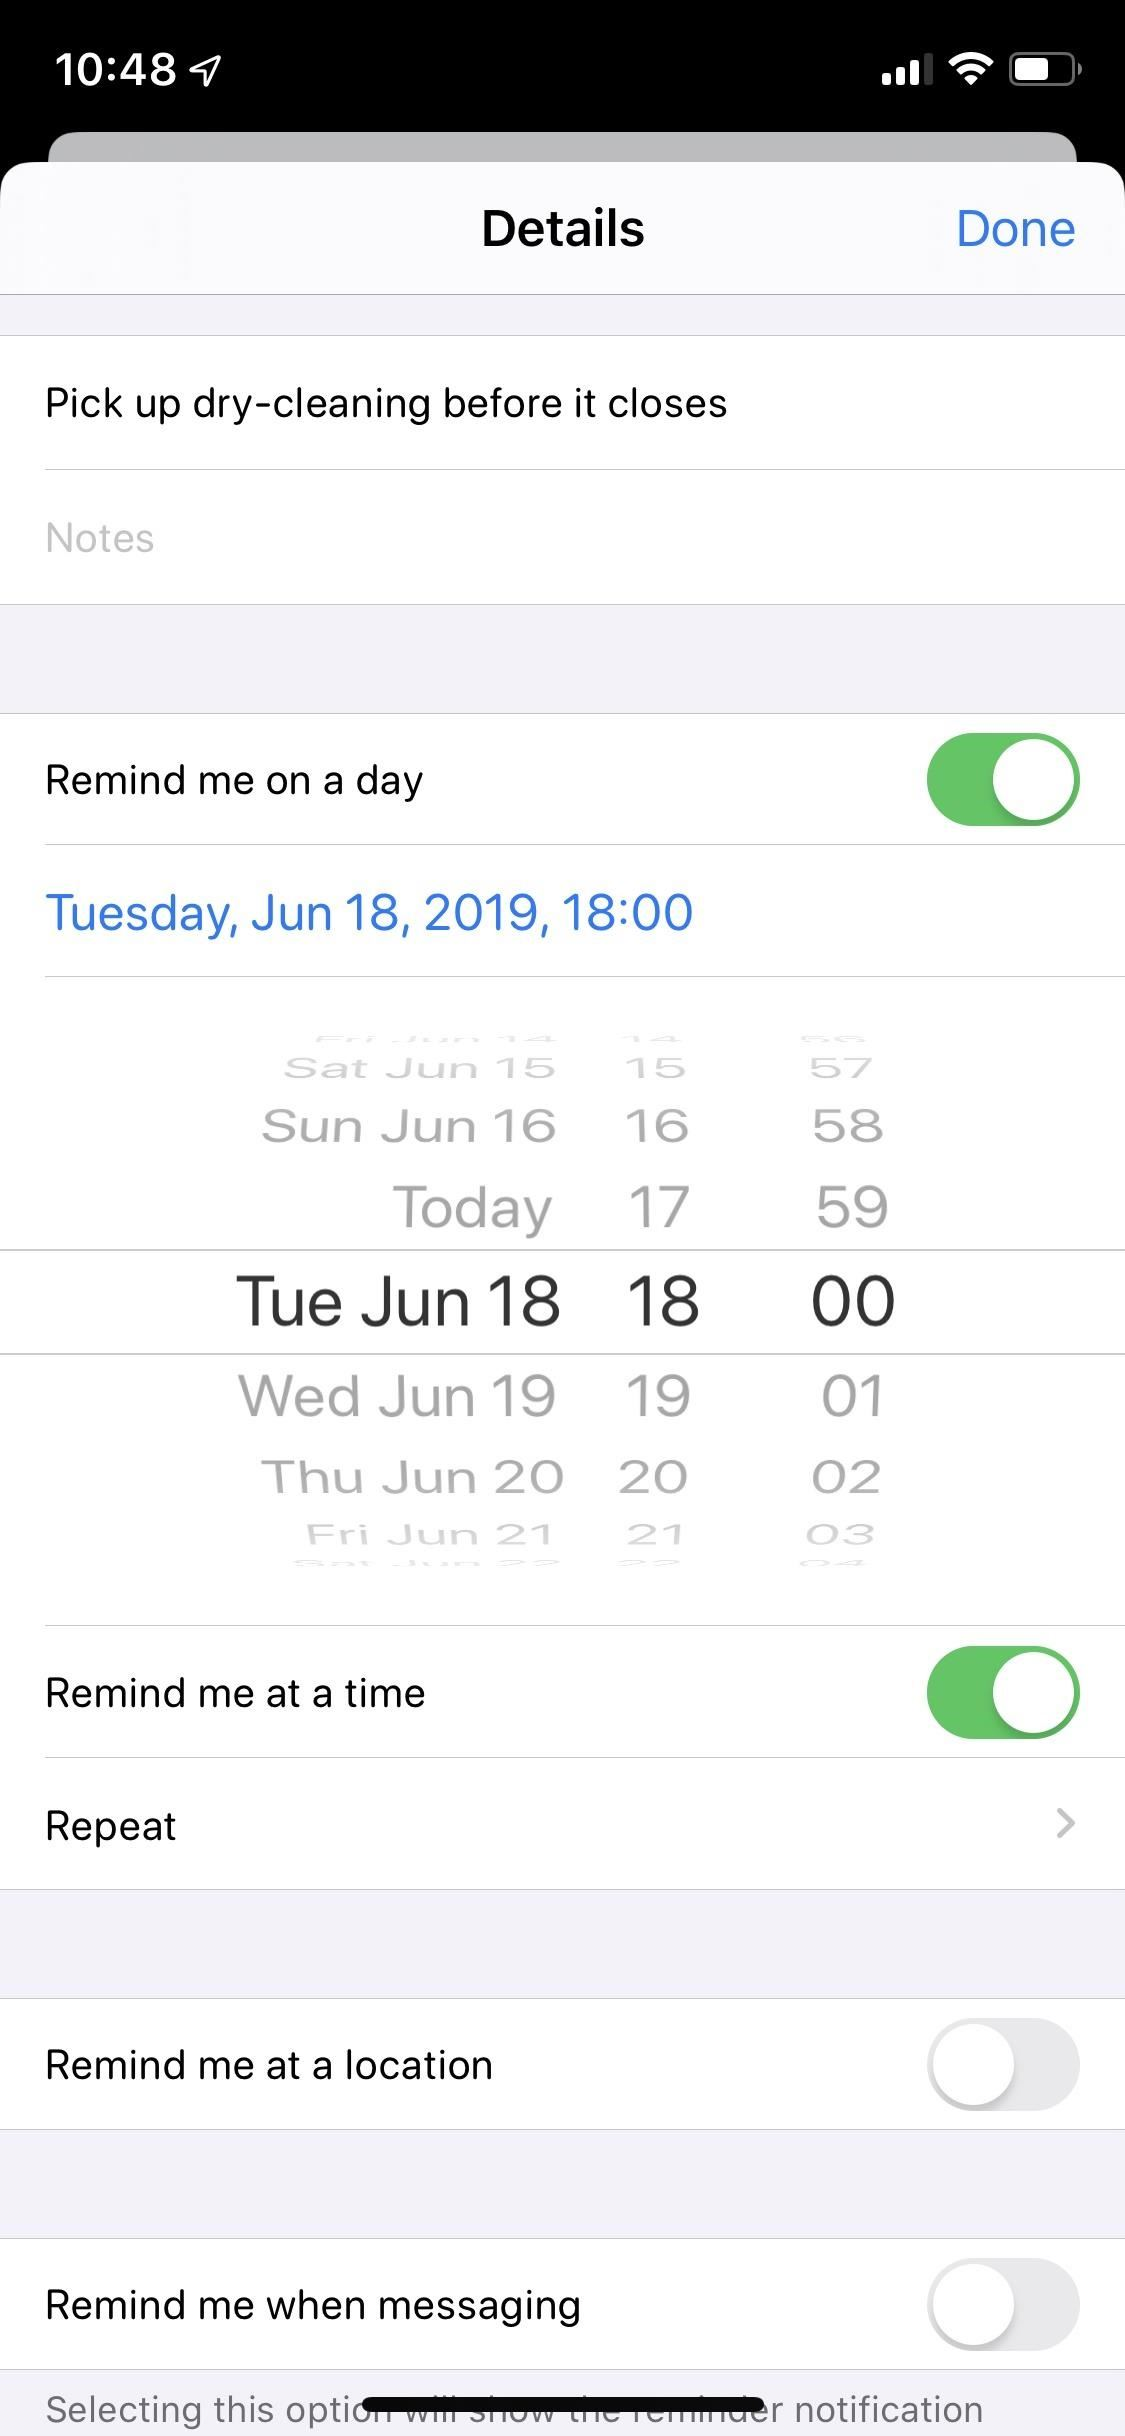 Use Reminder's New Quick Toolbar in iOS 13 to Add Times, Locations, Flags & Images to Tasks